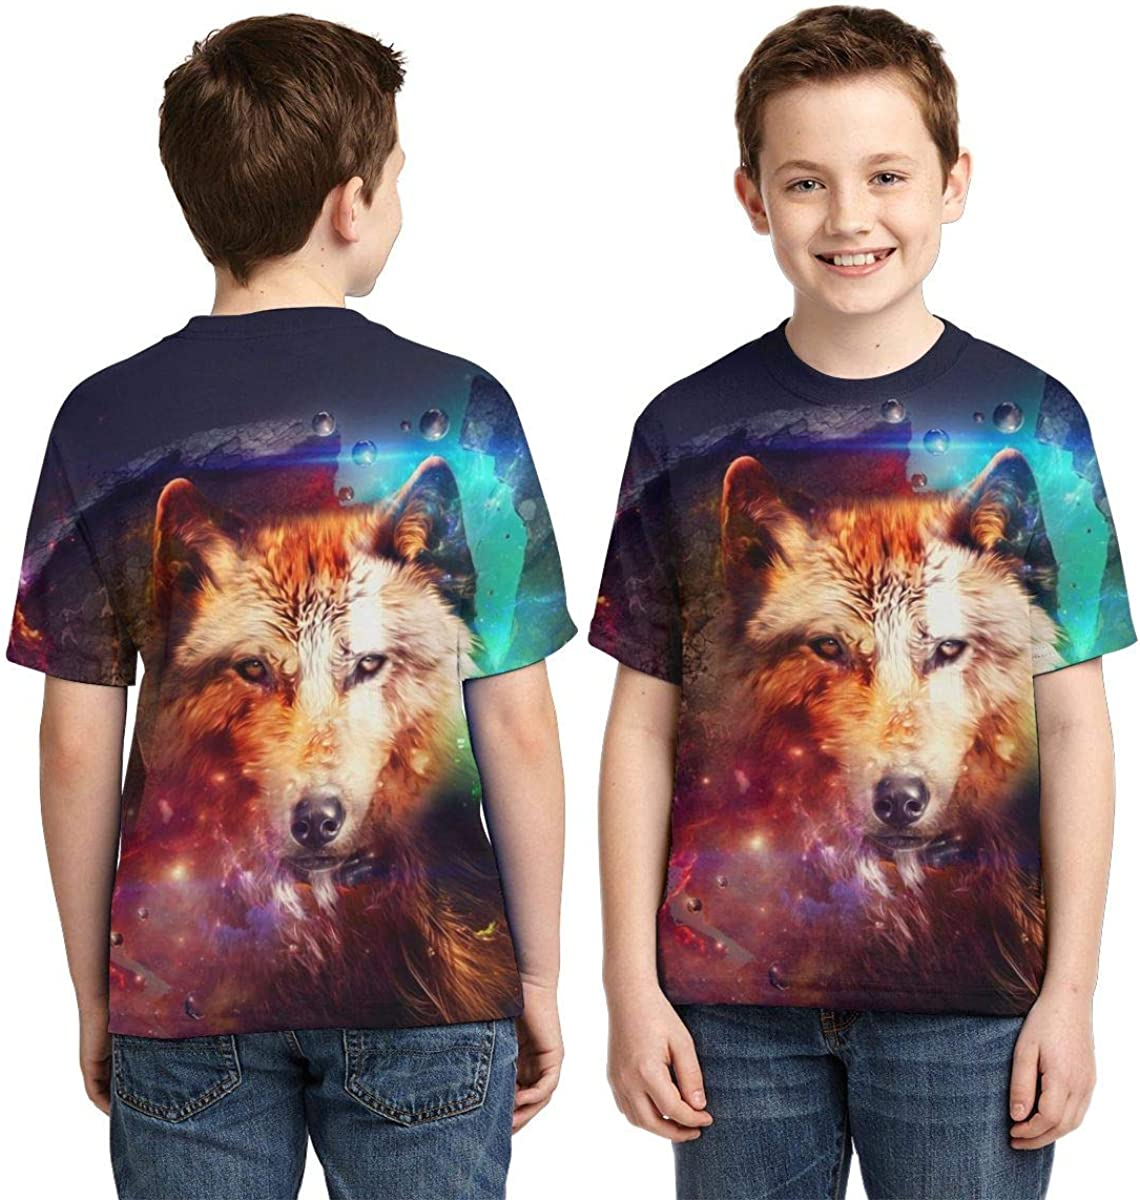 Boys Short Sleeve Wilk Fantasy Wolf 3D Print T-Shirts Graphic Tees for Kids Teens